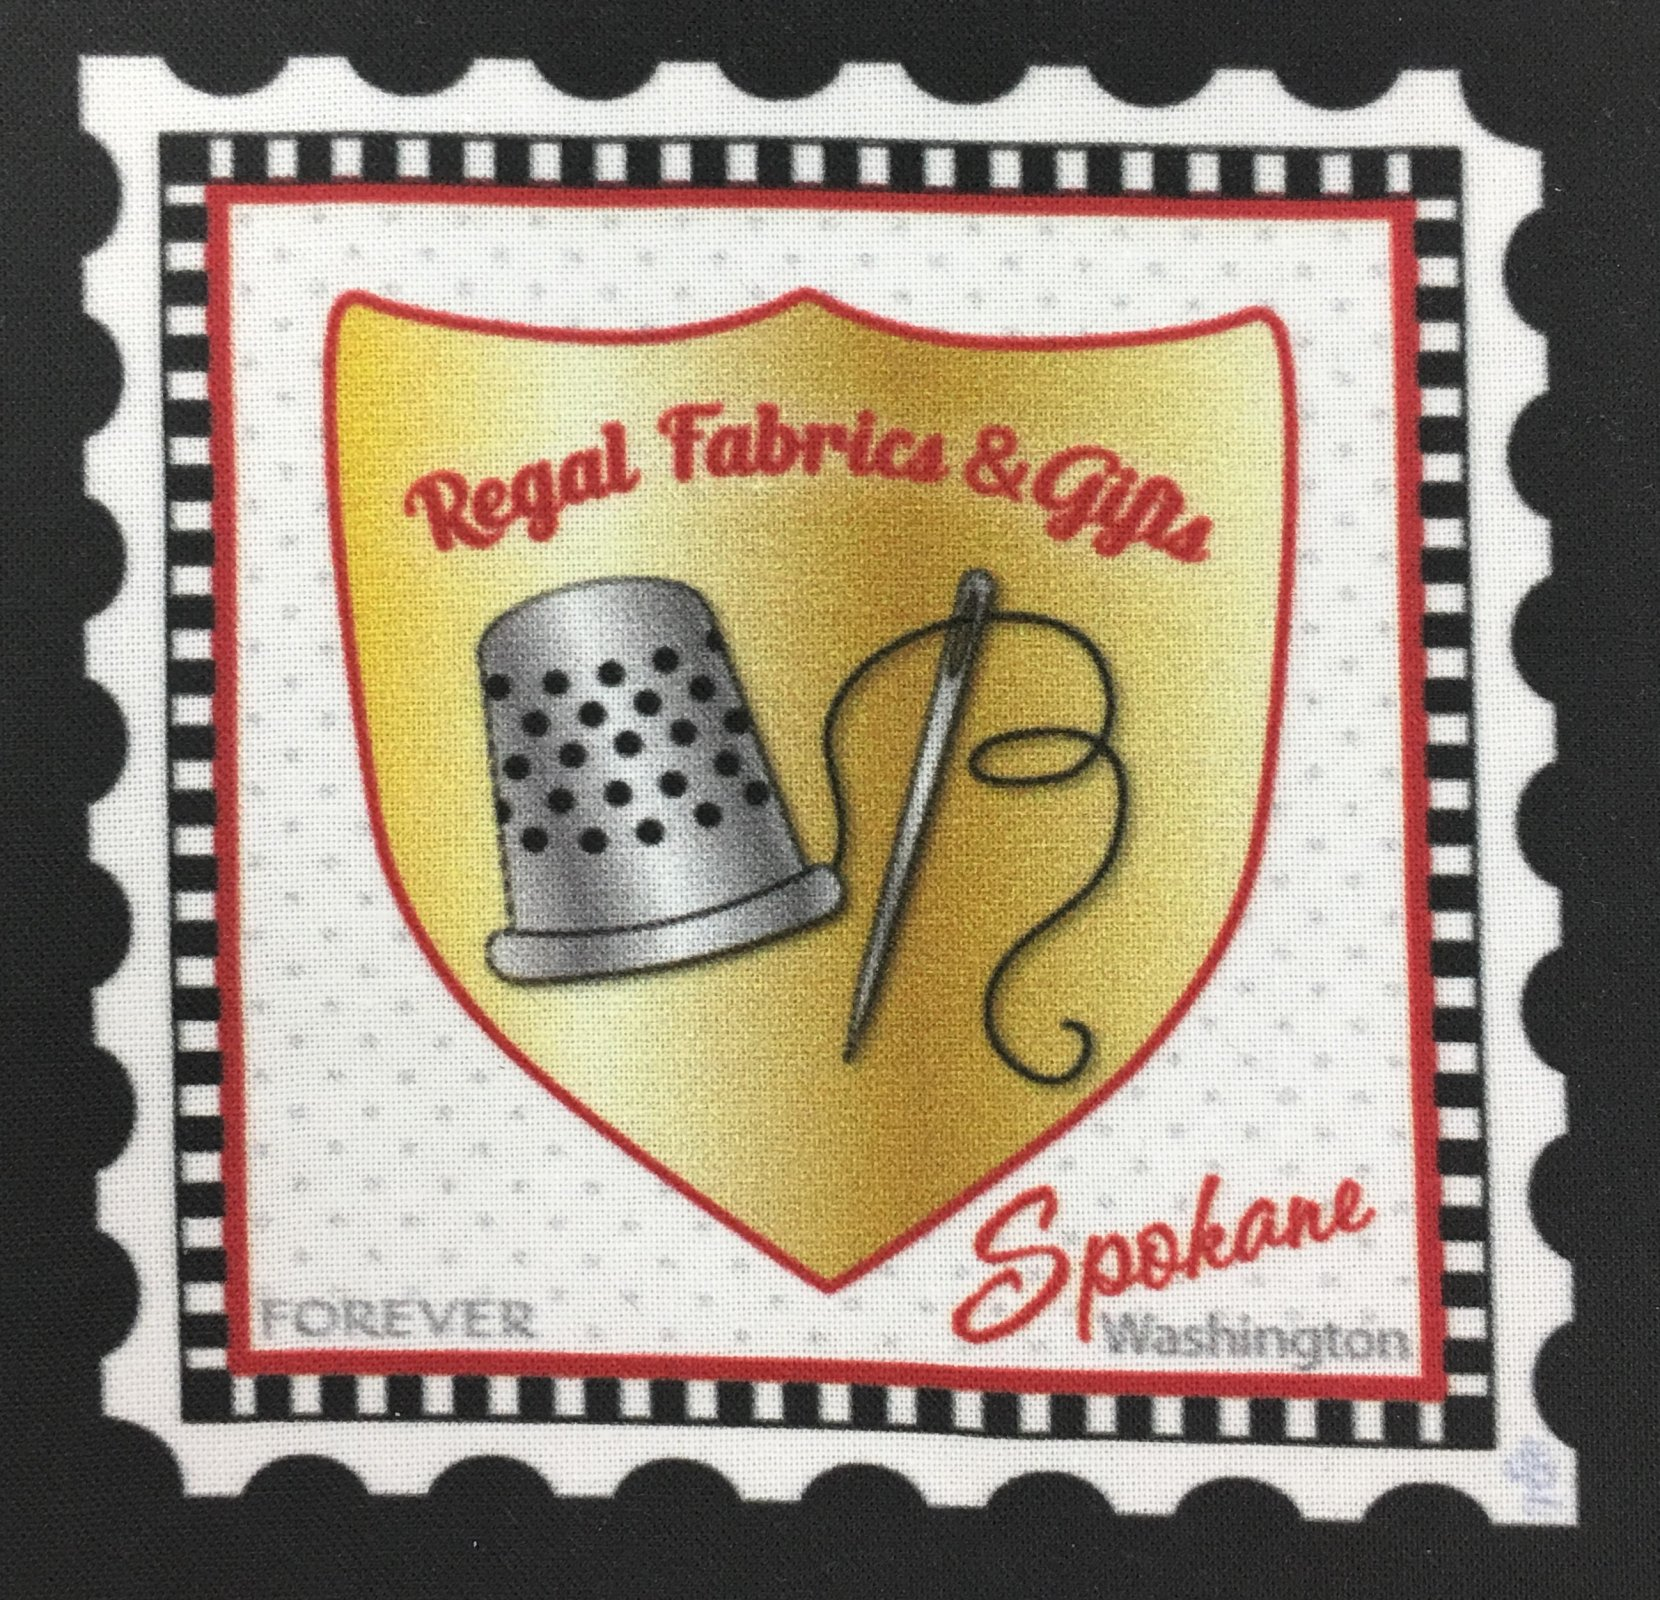 Regal Fabrics& Gifts Logo Stamp